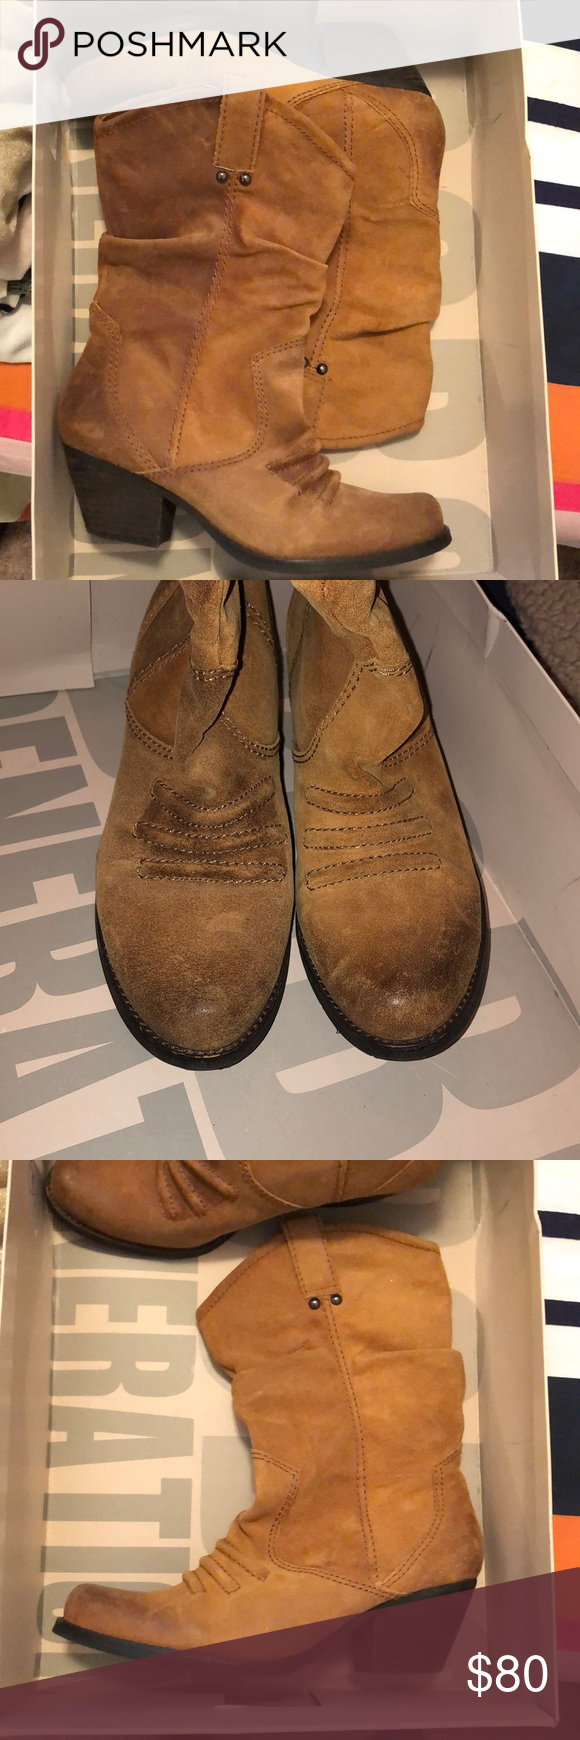 9e3abe1fc53579 BCBGeneration Holland Western Style Boots Overall excellent condition. Only  worn two or three times.